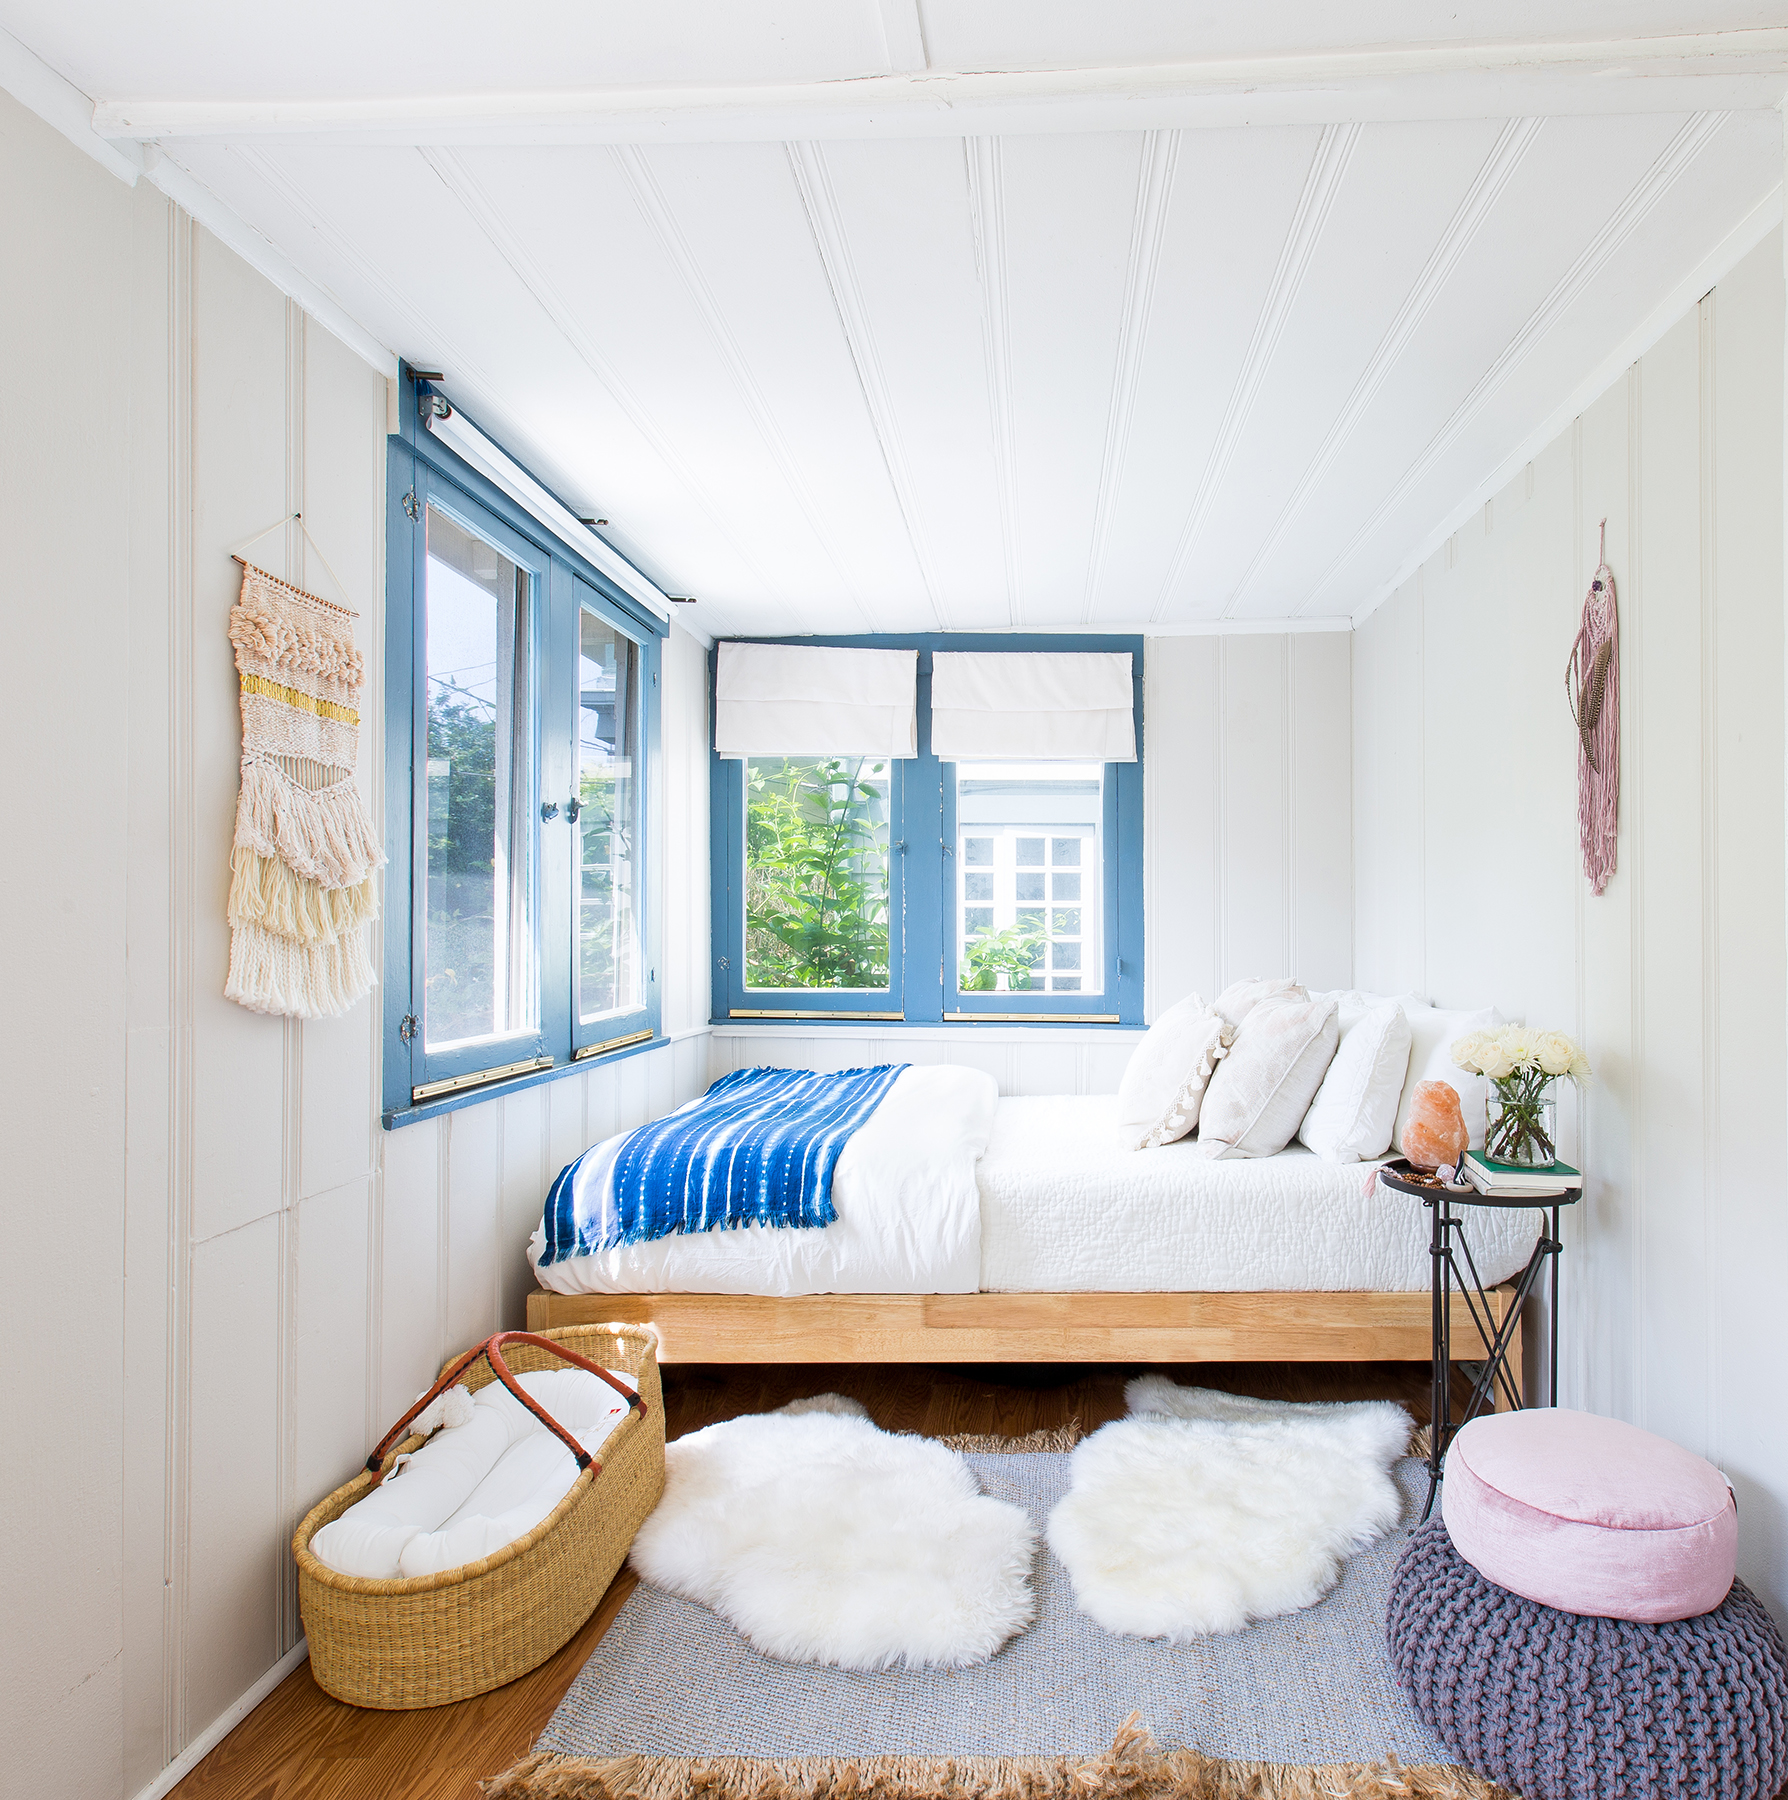 Room with light-colored wall decor